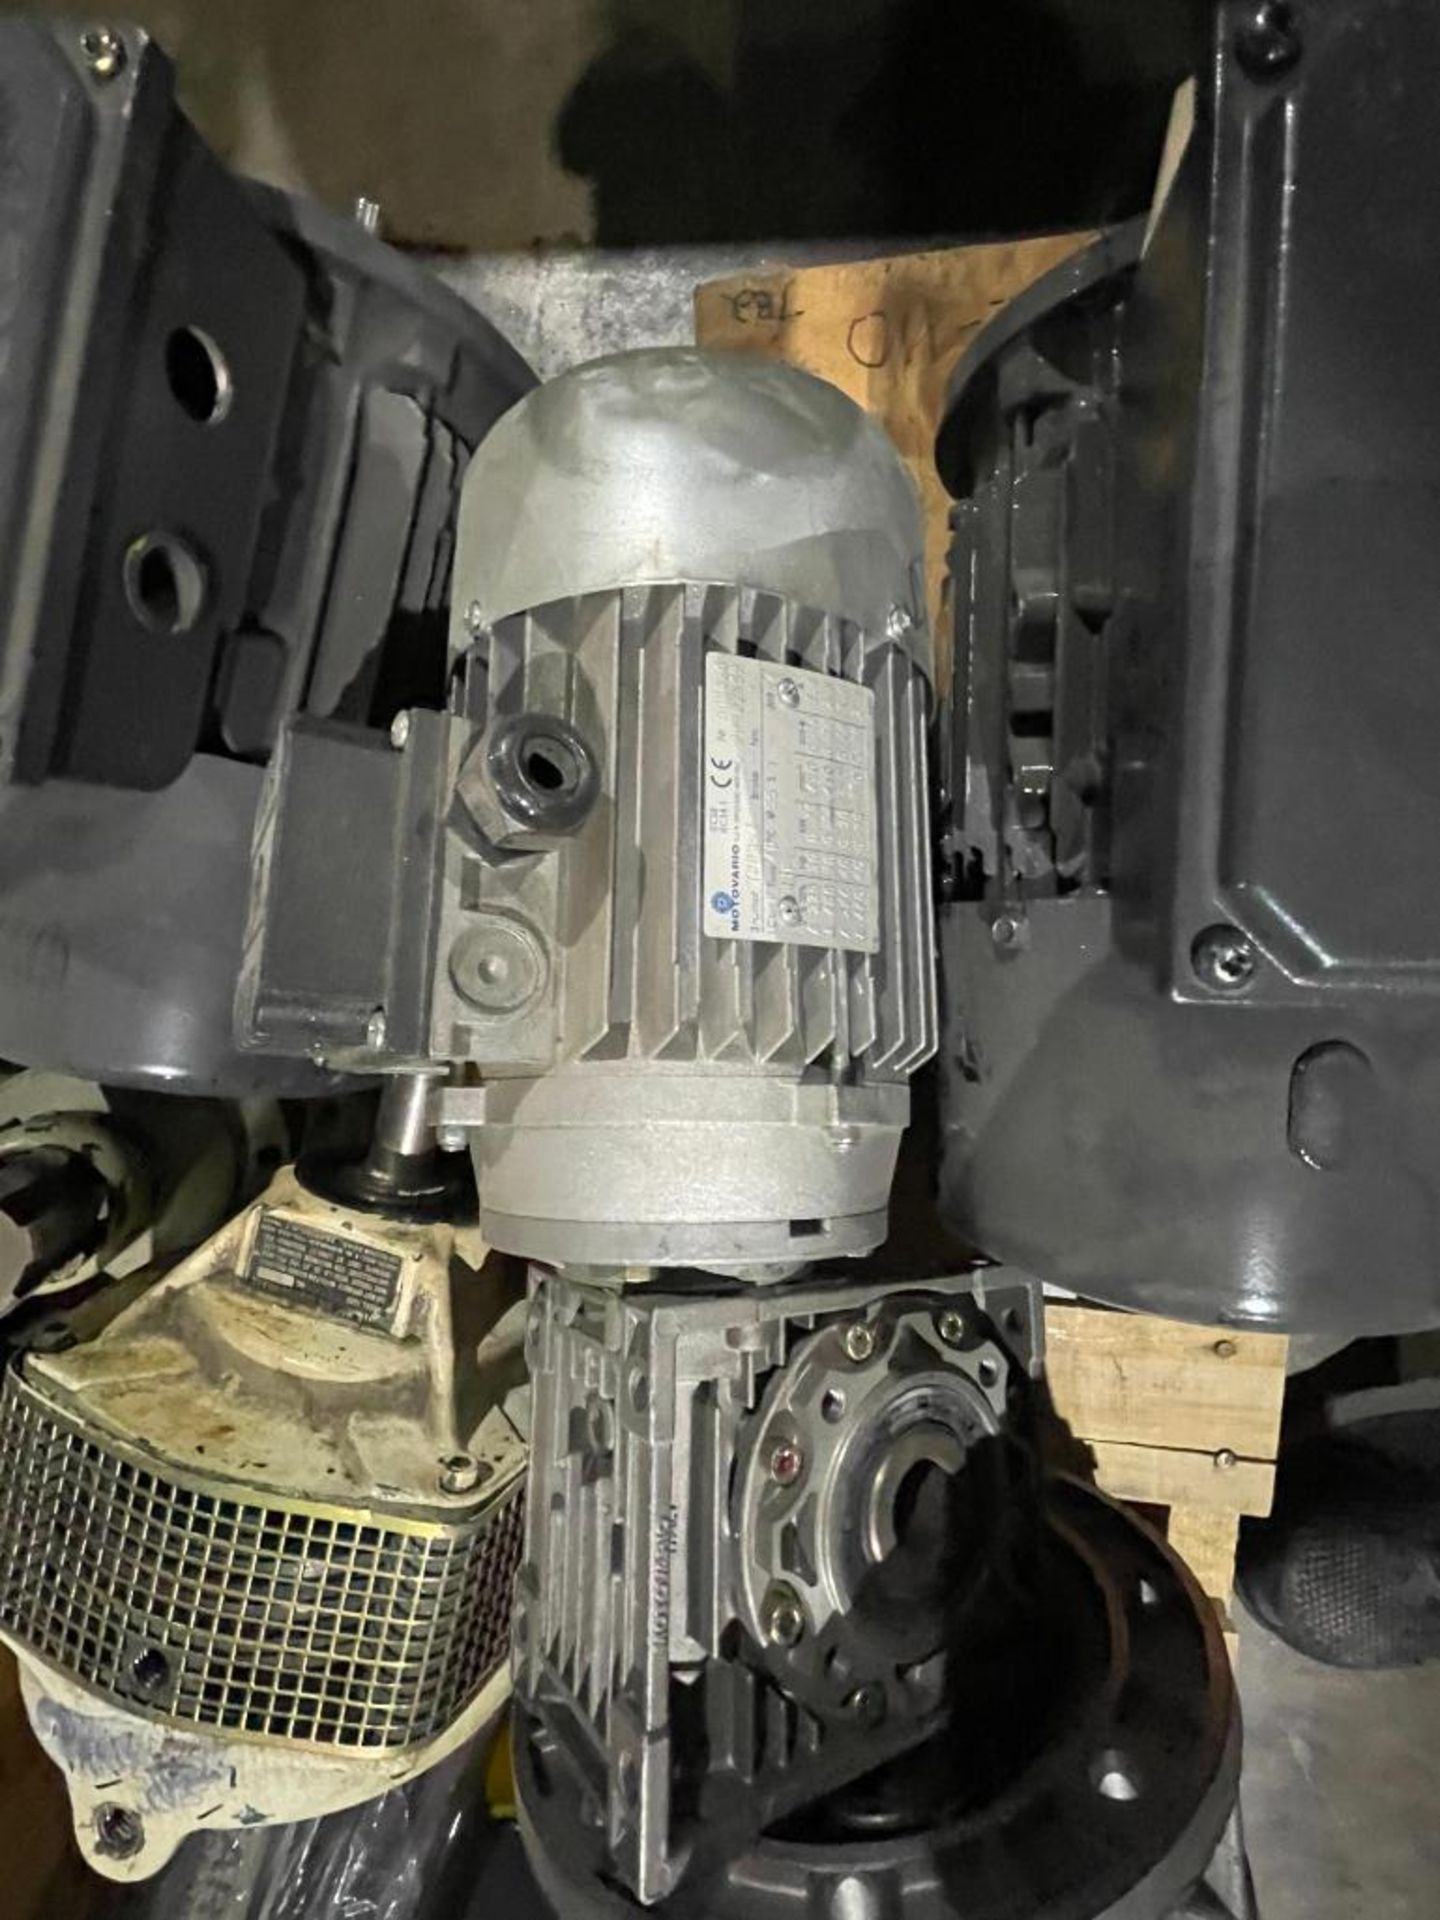 pallet of new and used motors and drives - Image 8 of 11